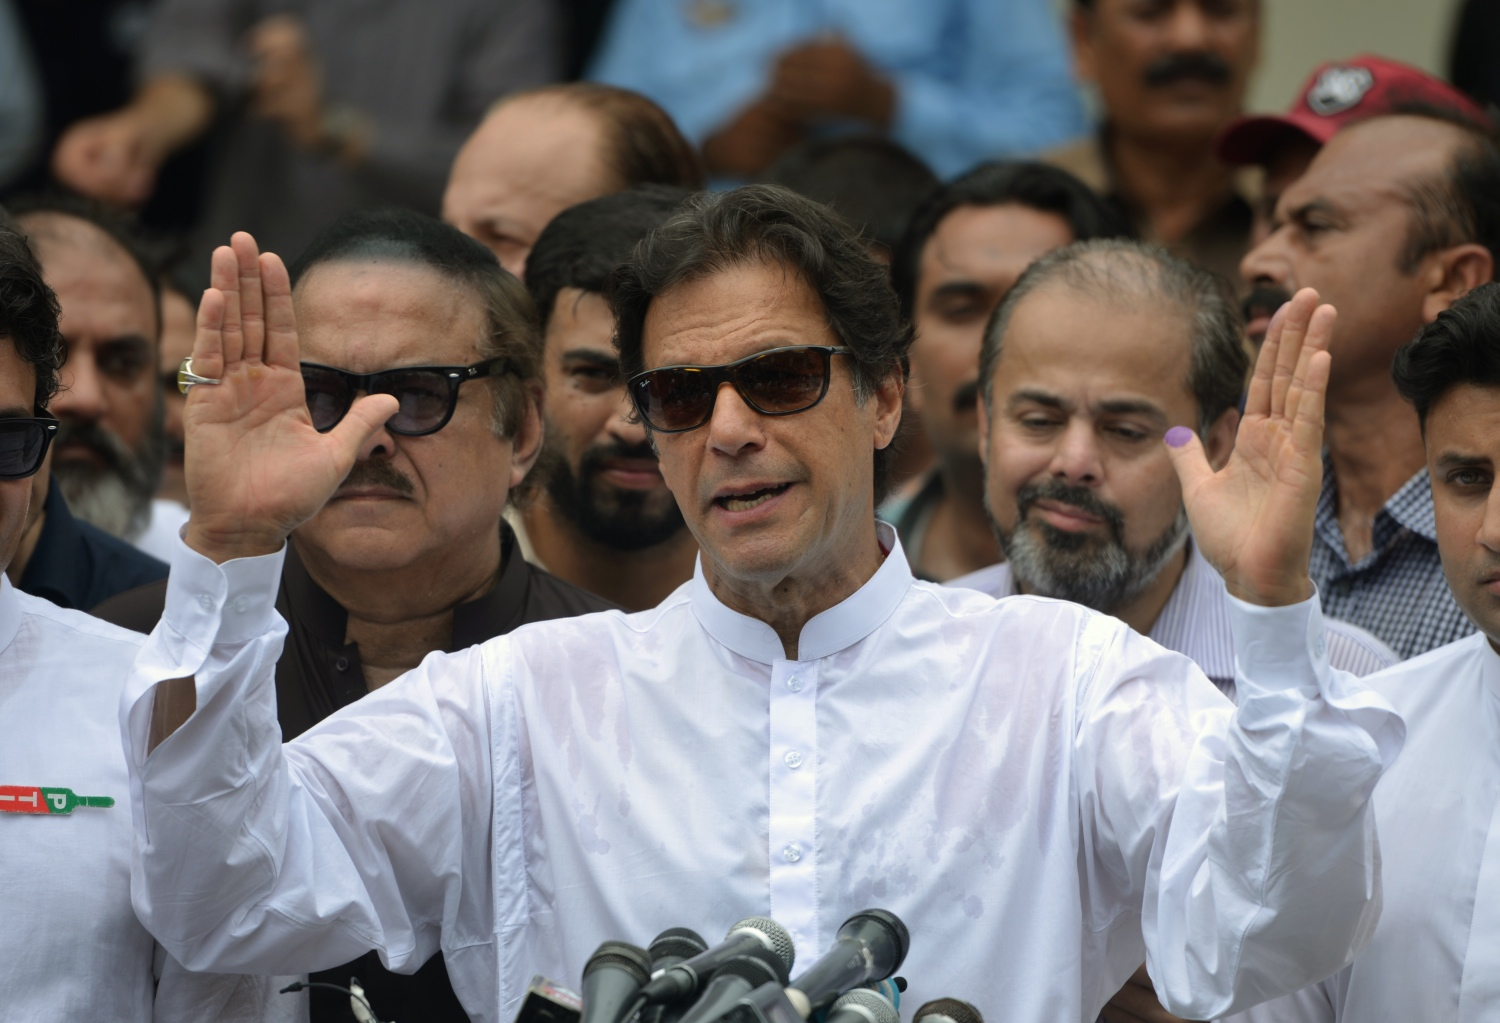 Former cricketer Imran Khan is likely to be Pakistan's next prime minister. (Photo credit: Aamir Qureshi/AFP).